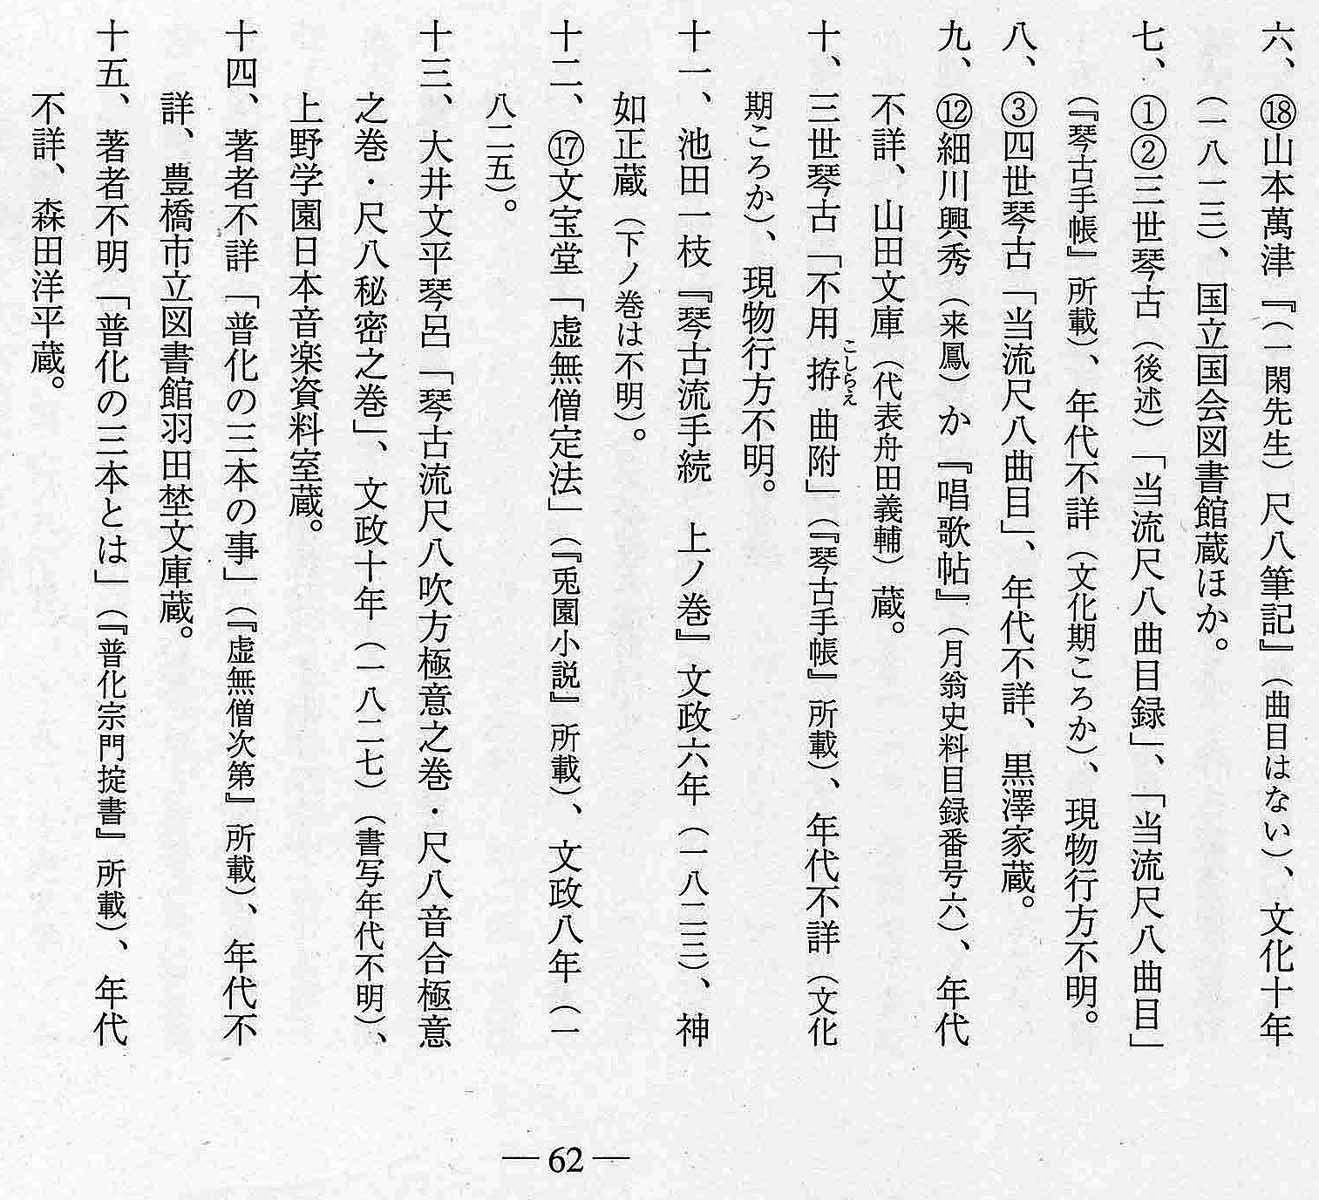 The Tsukitani Tsuneko shakuhachi kyoku list page 62, bottom